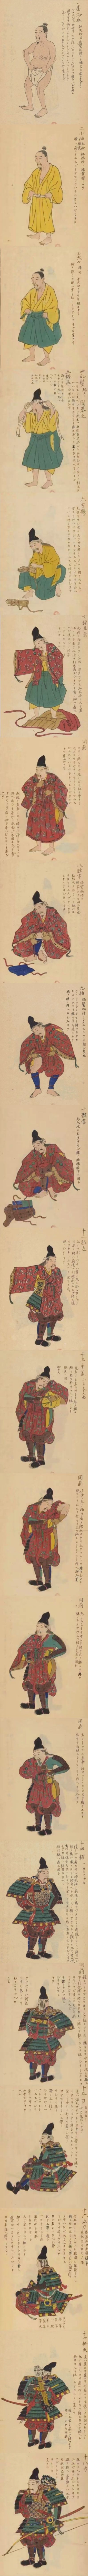 Japanese Edo Period series of woodblock prints showing  the correct way to wear armor.